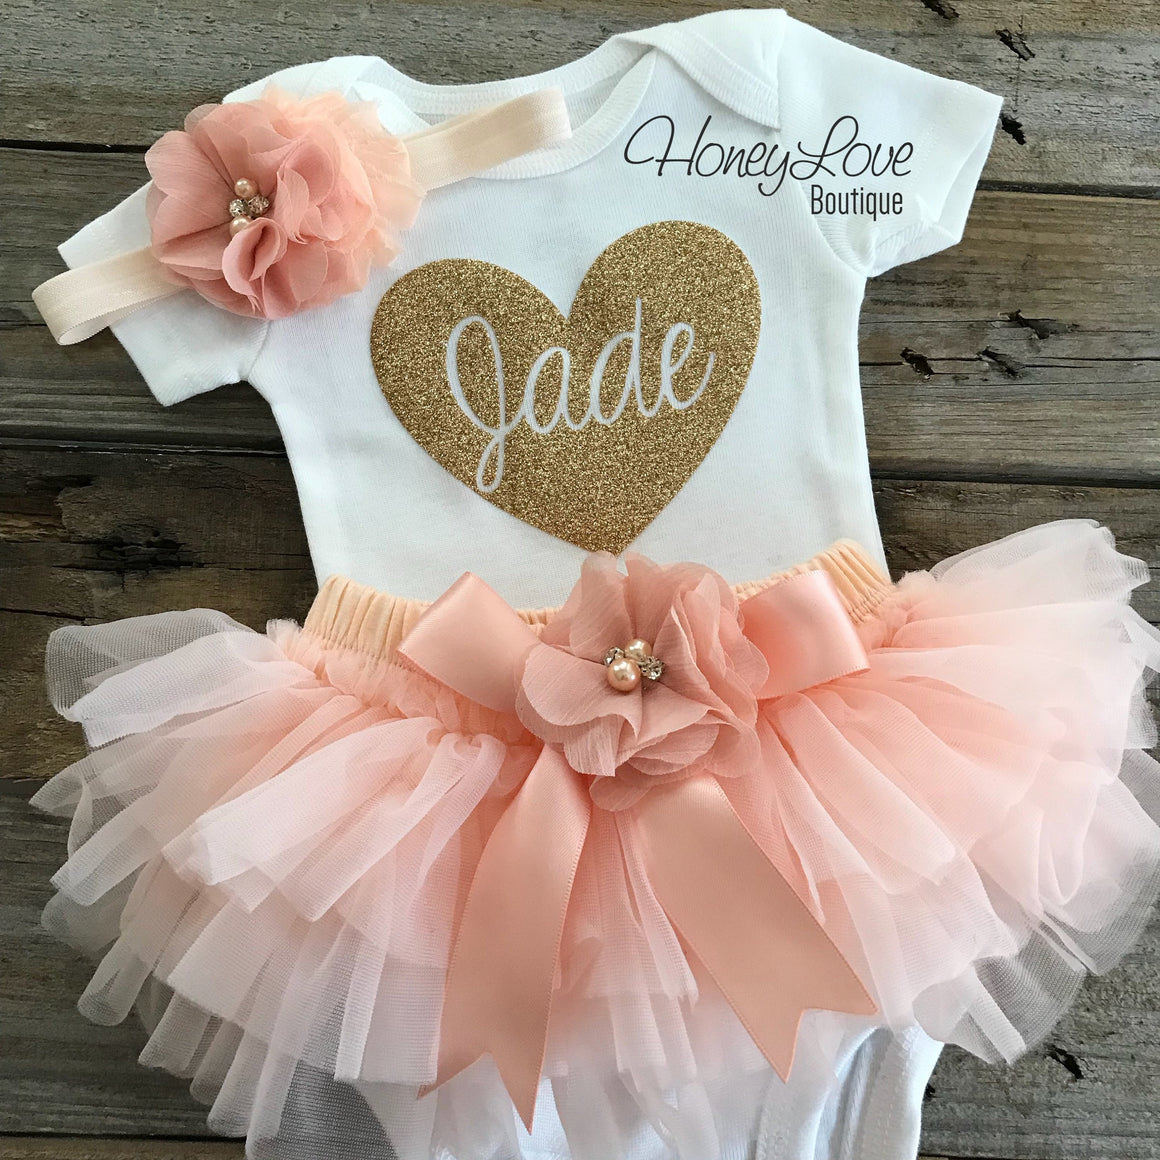 PERSONALIZED Name inside Heart - Gold glitter and Peach - embellished tutu skirt bloomer - HoneyLoveBoutique